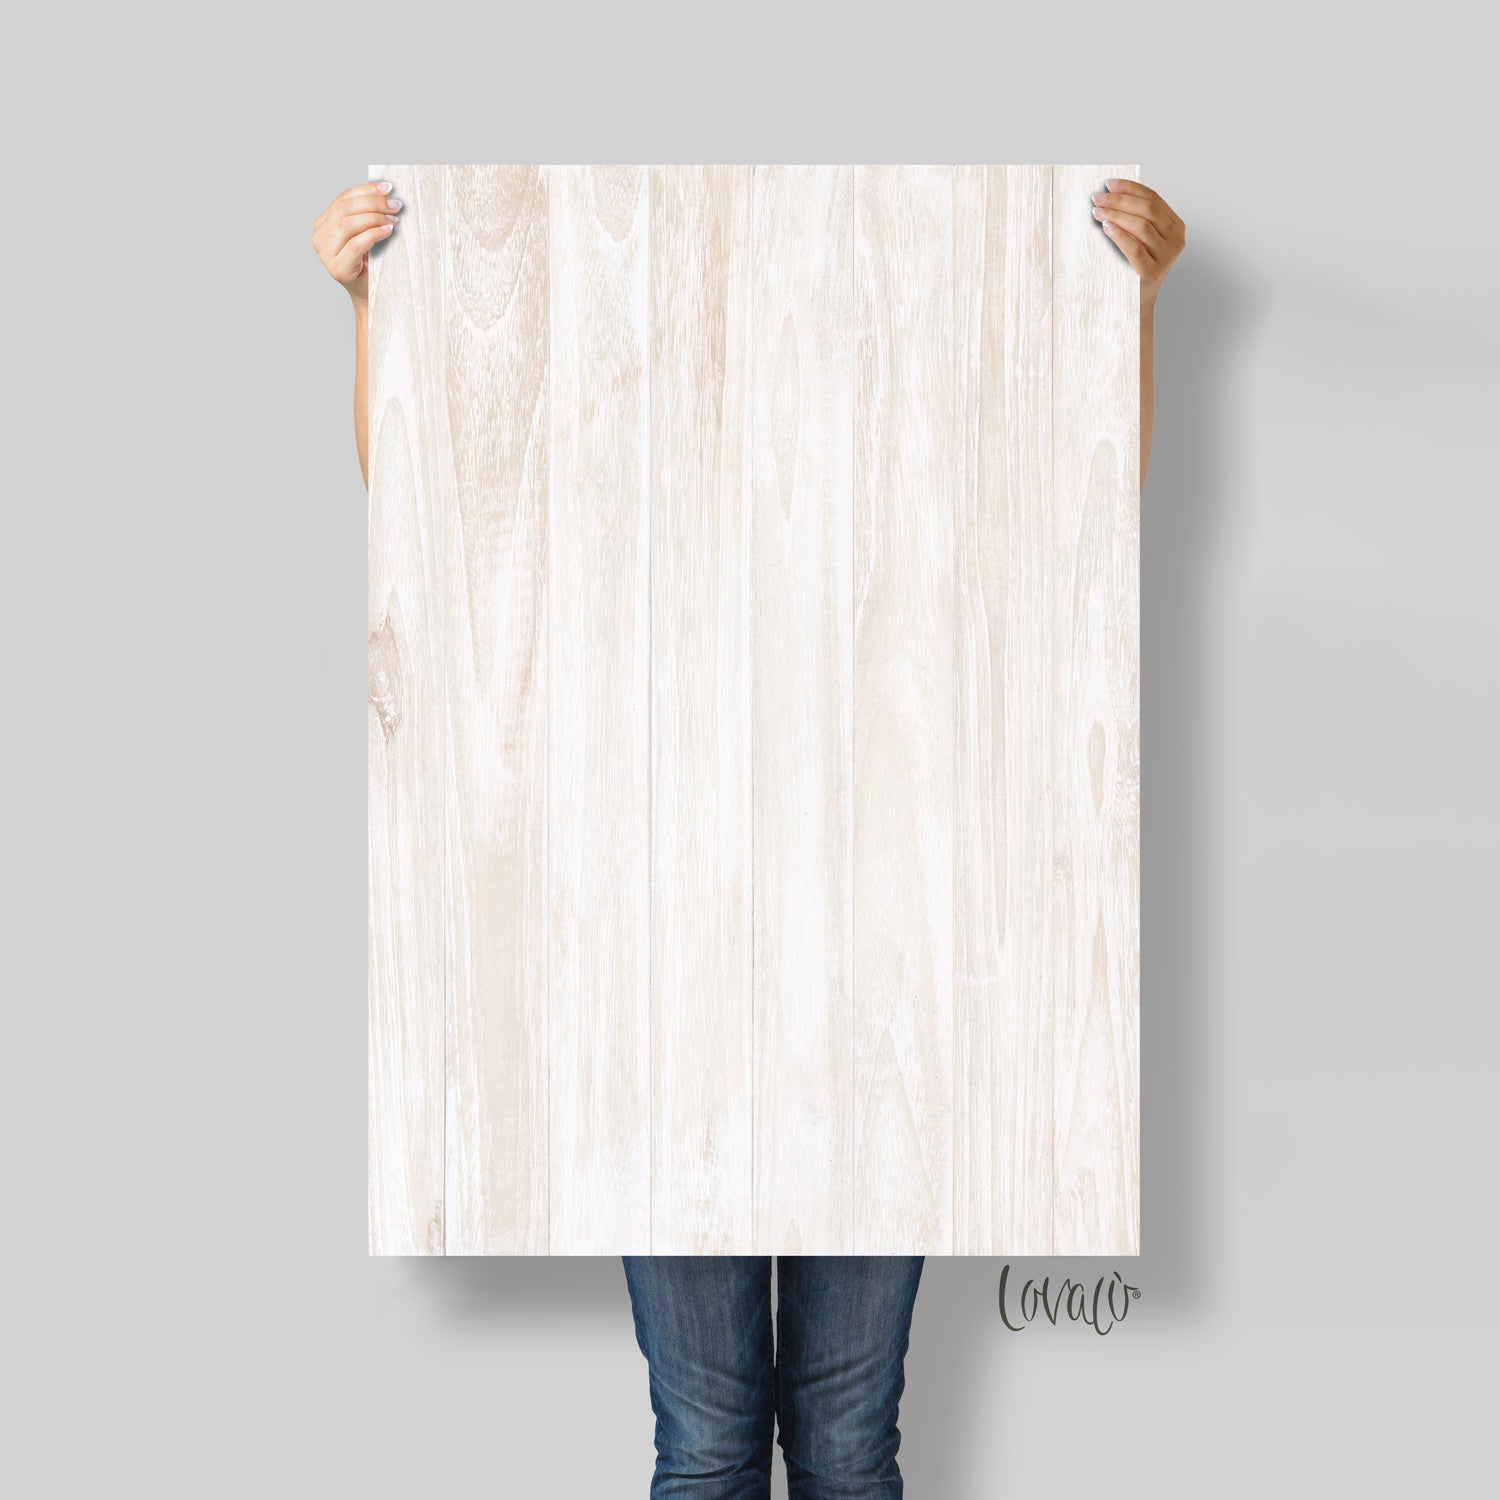 White Natural wood photography backdrop - Lov 727